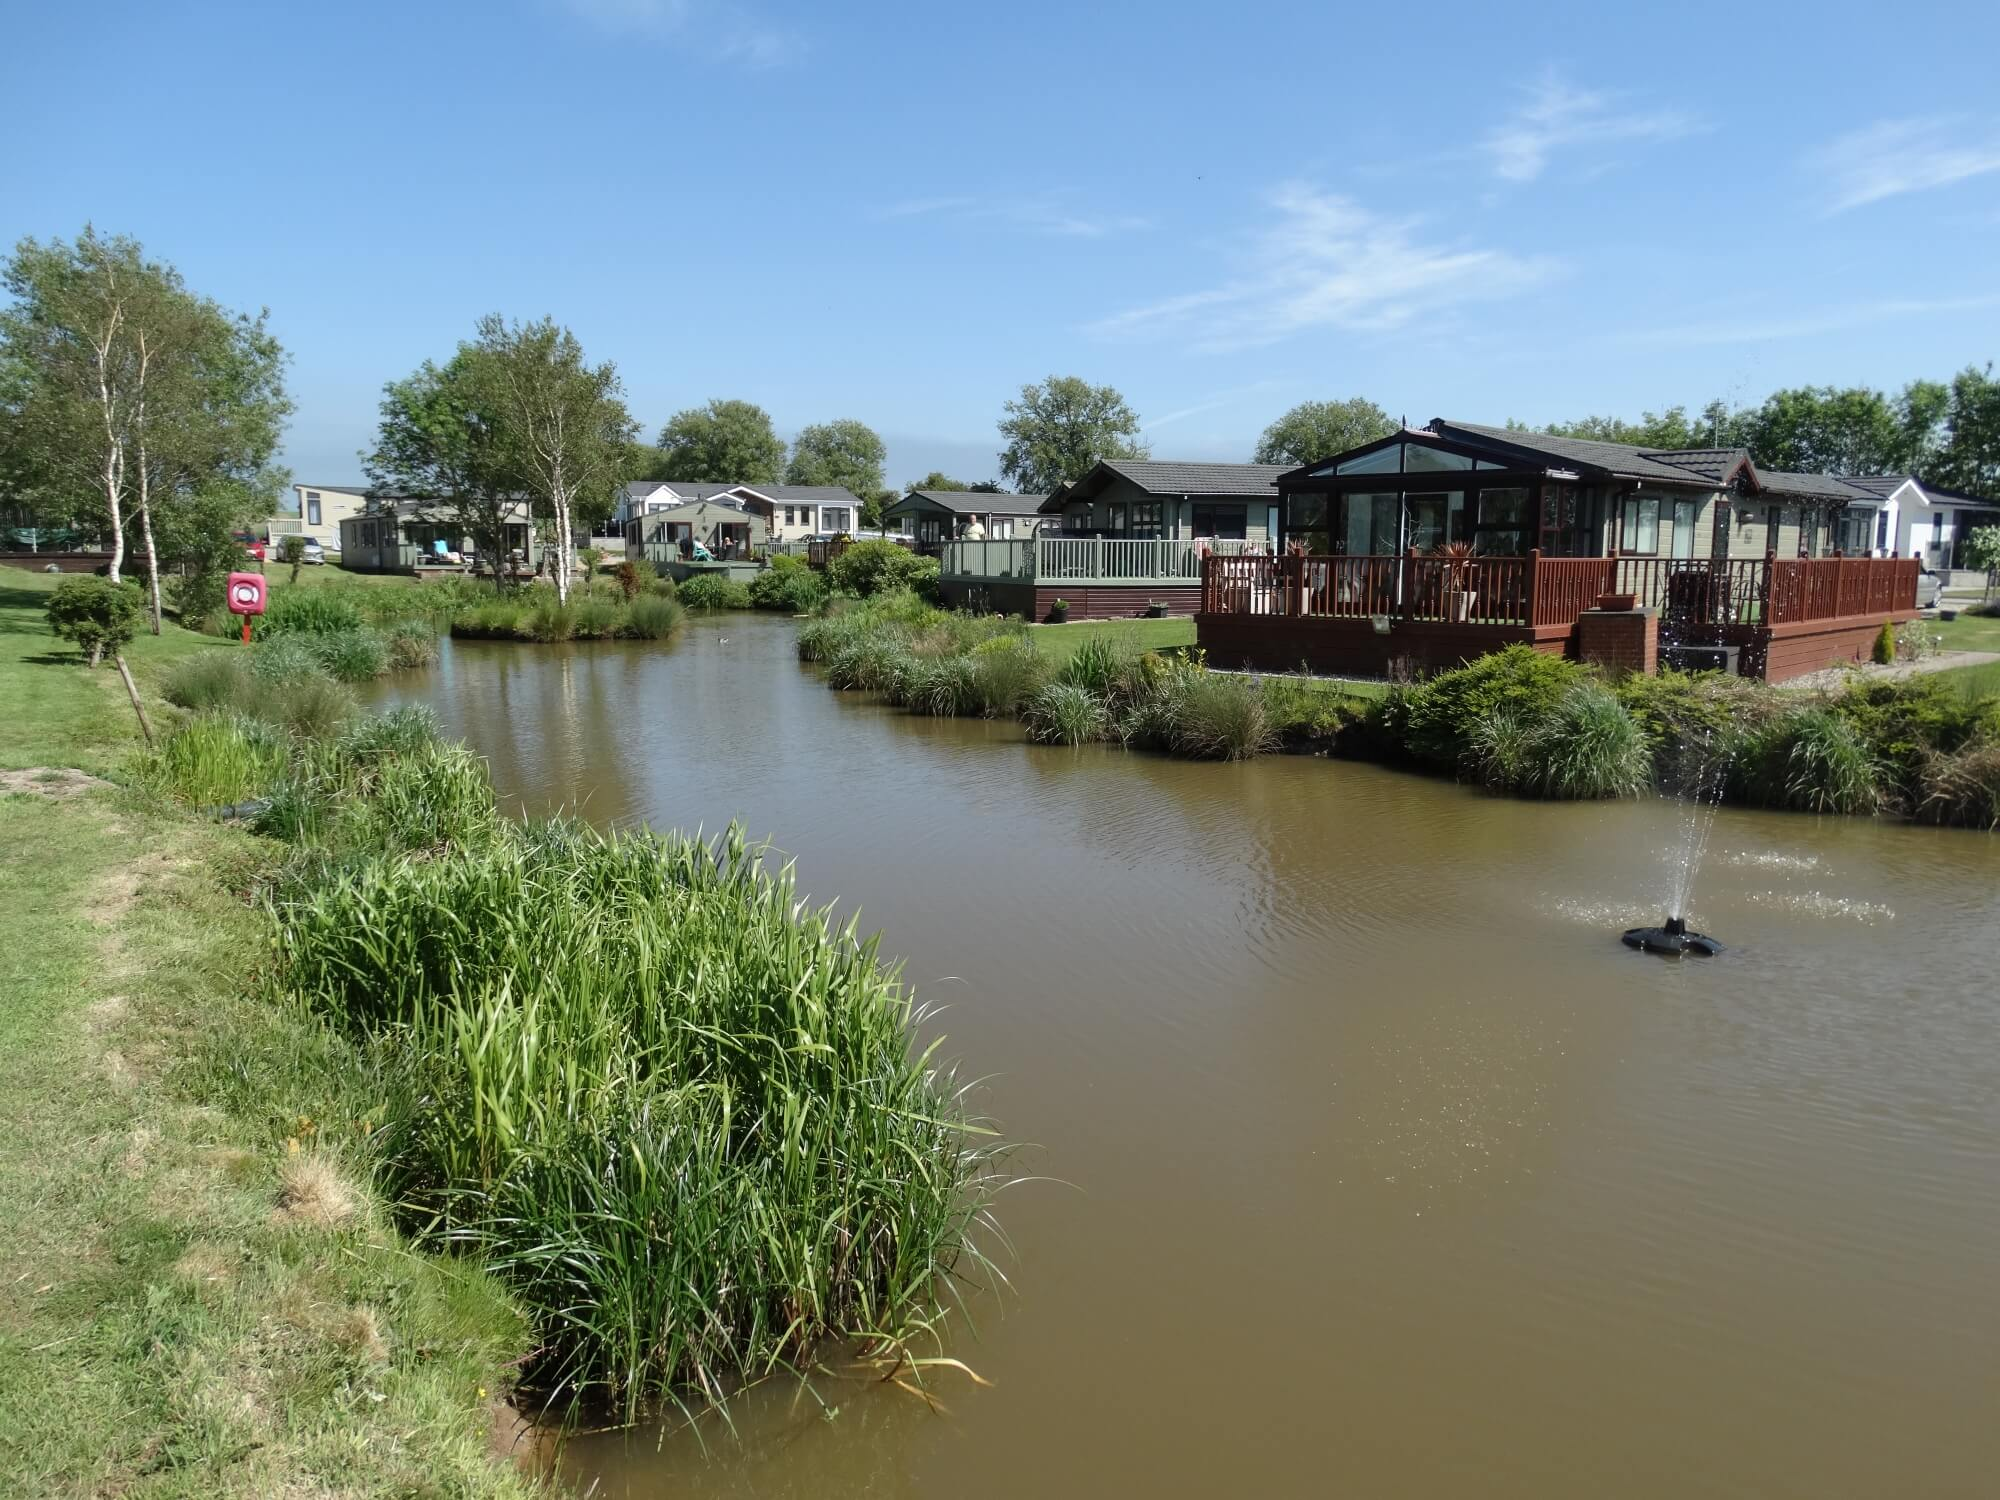 Residential Lodges